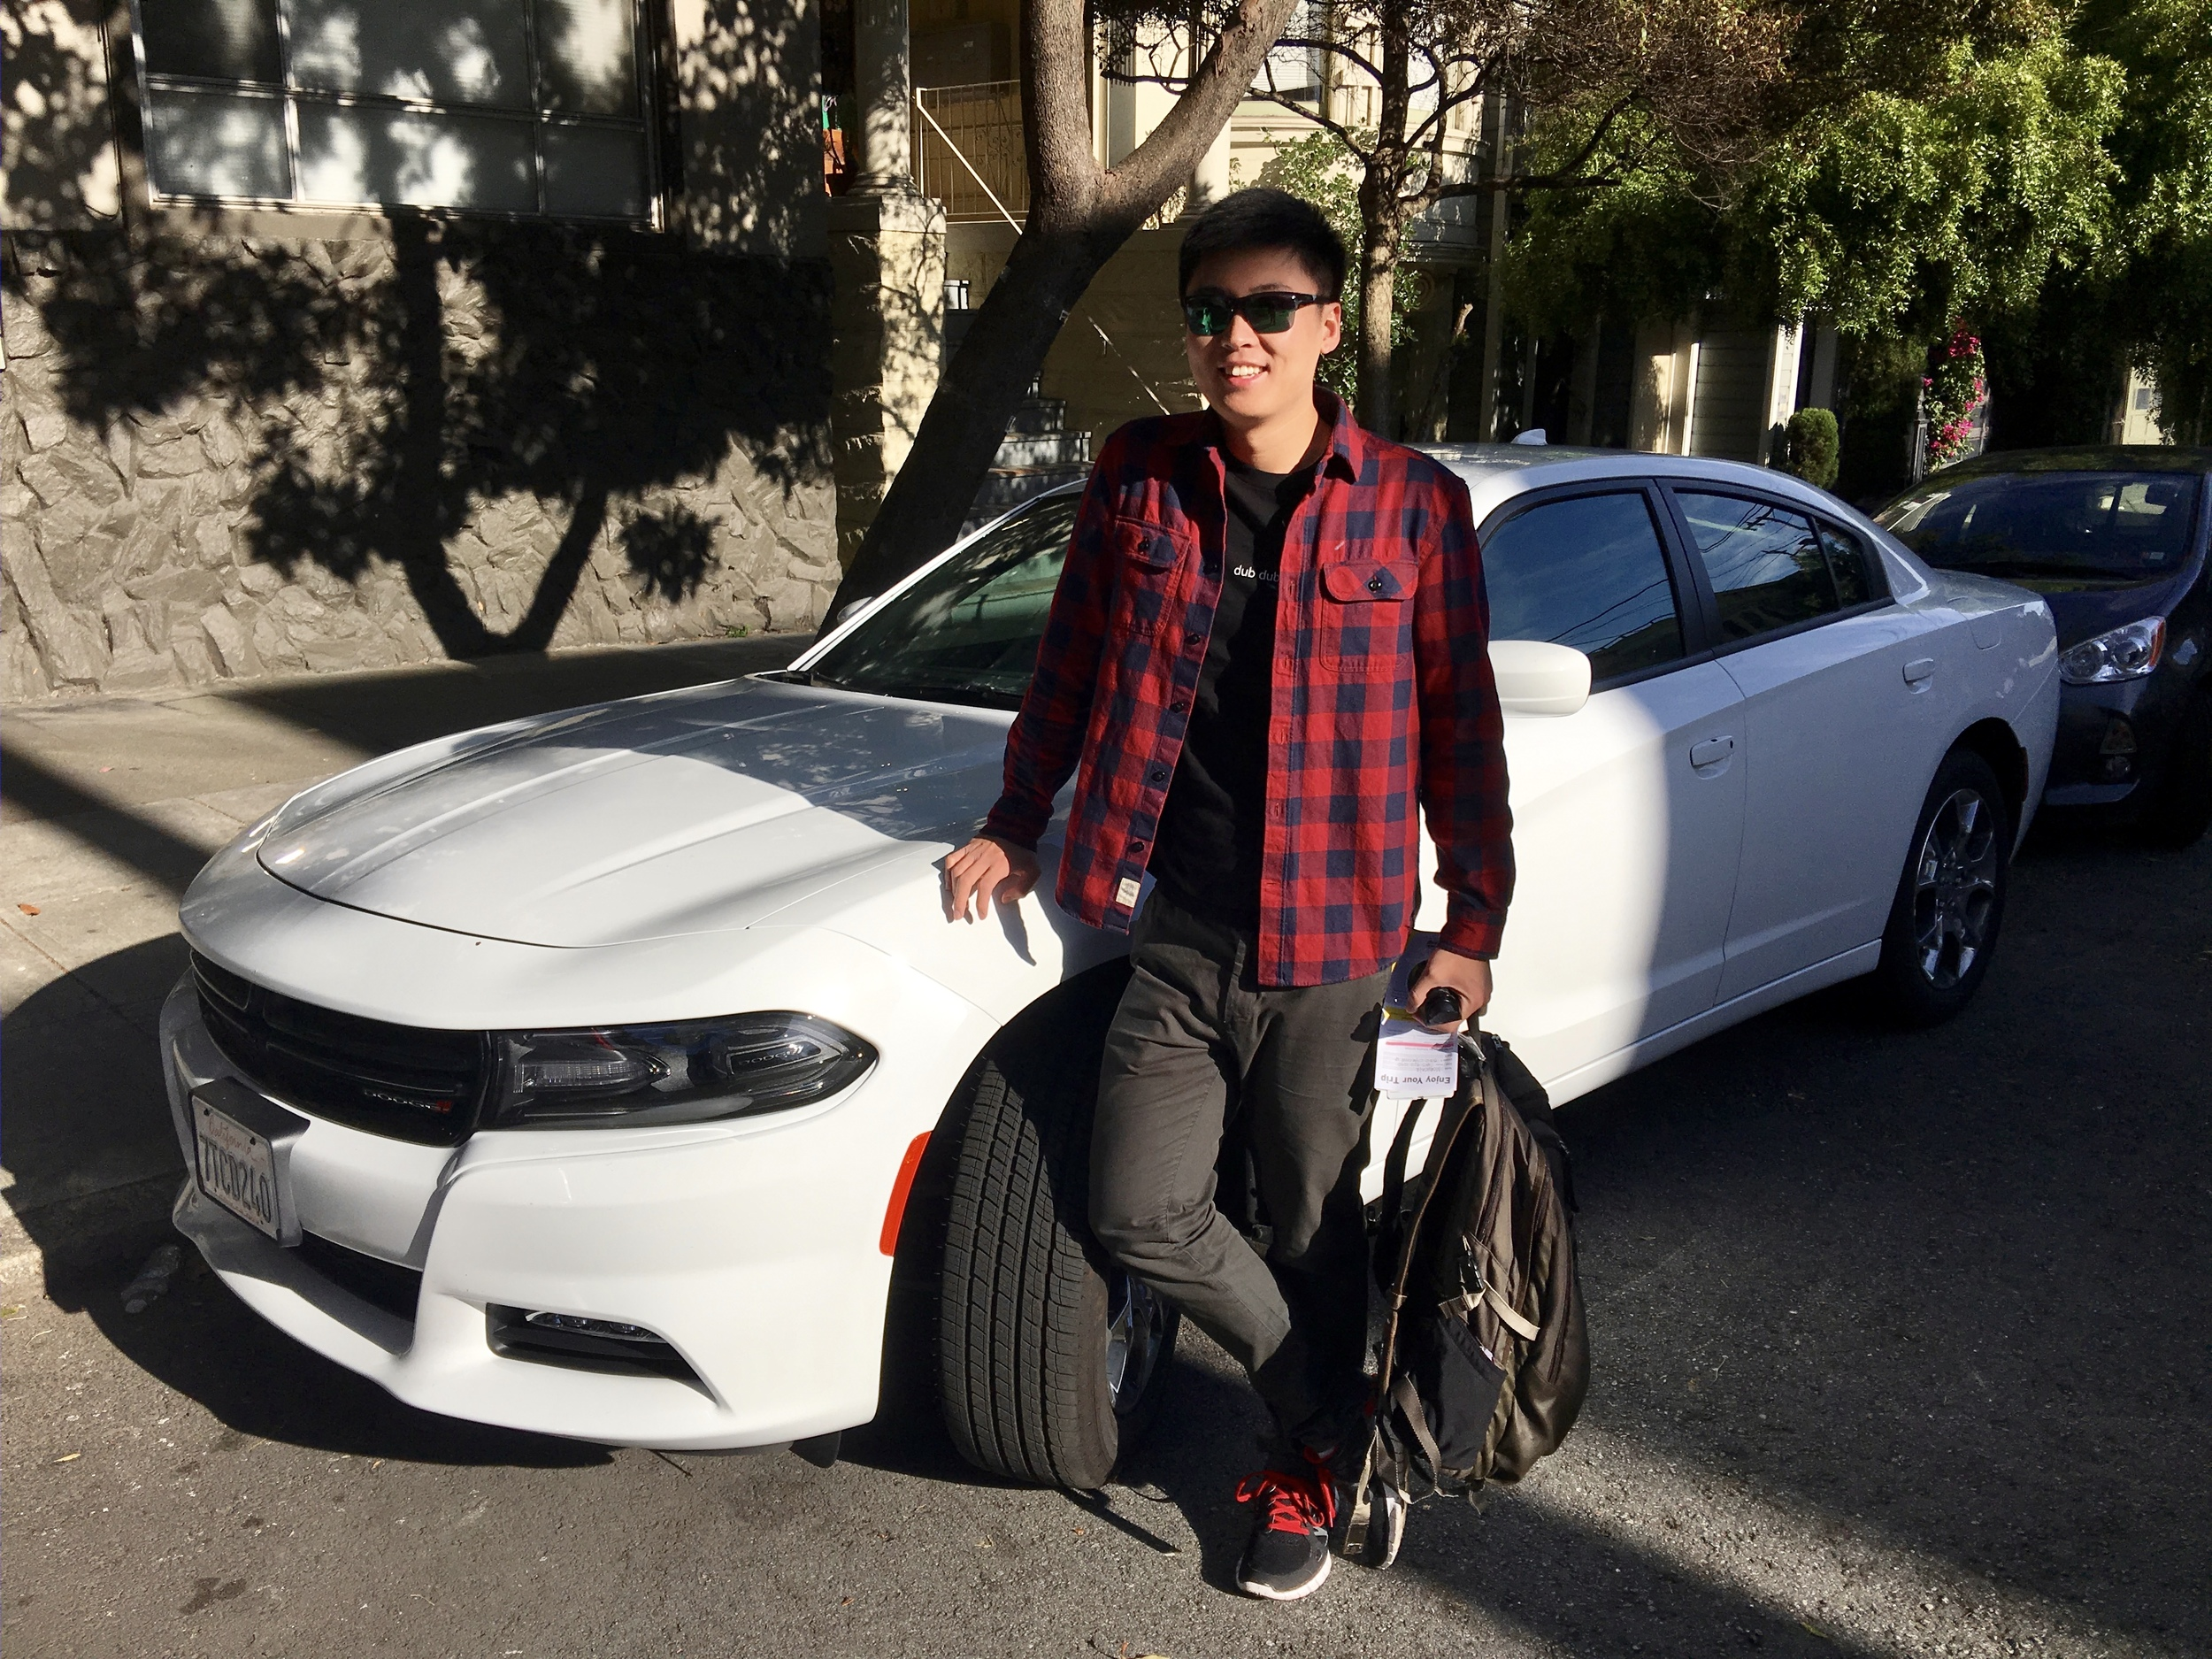 Me and the rented Dodge Charger